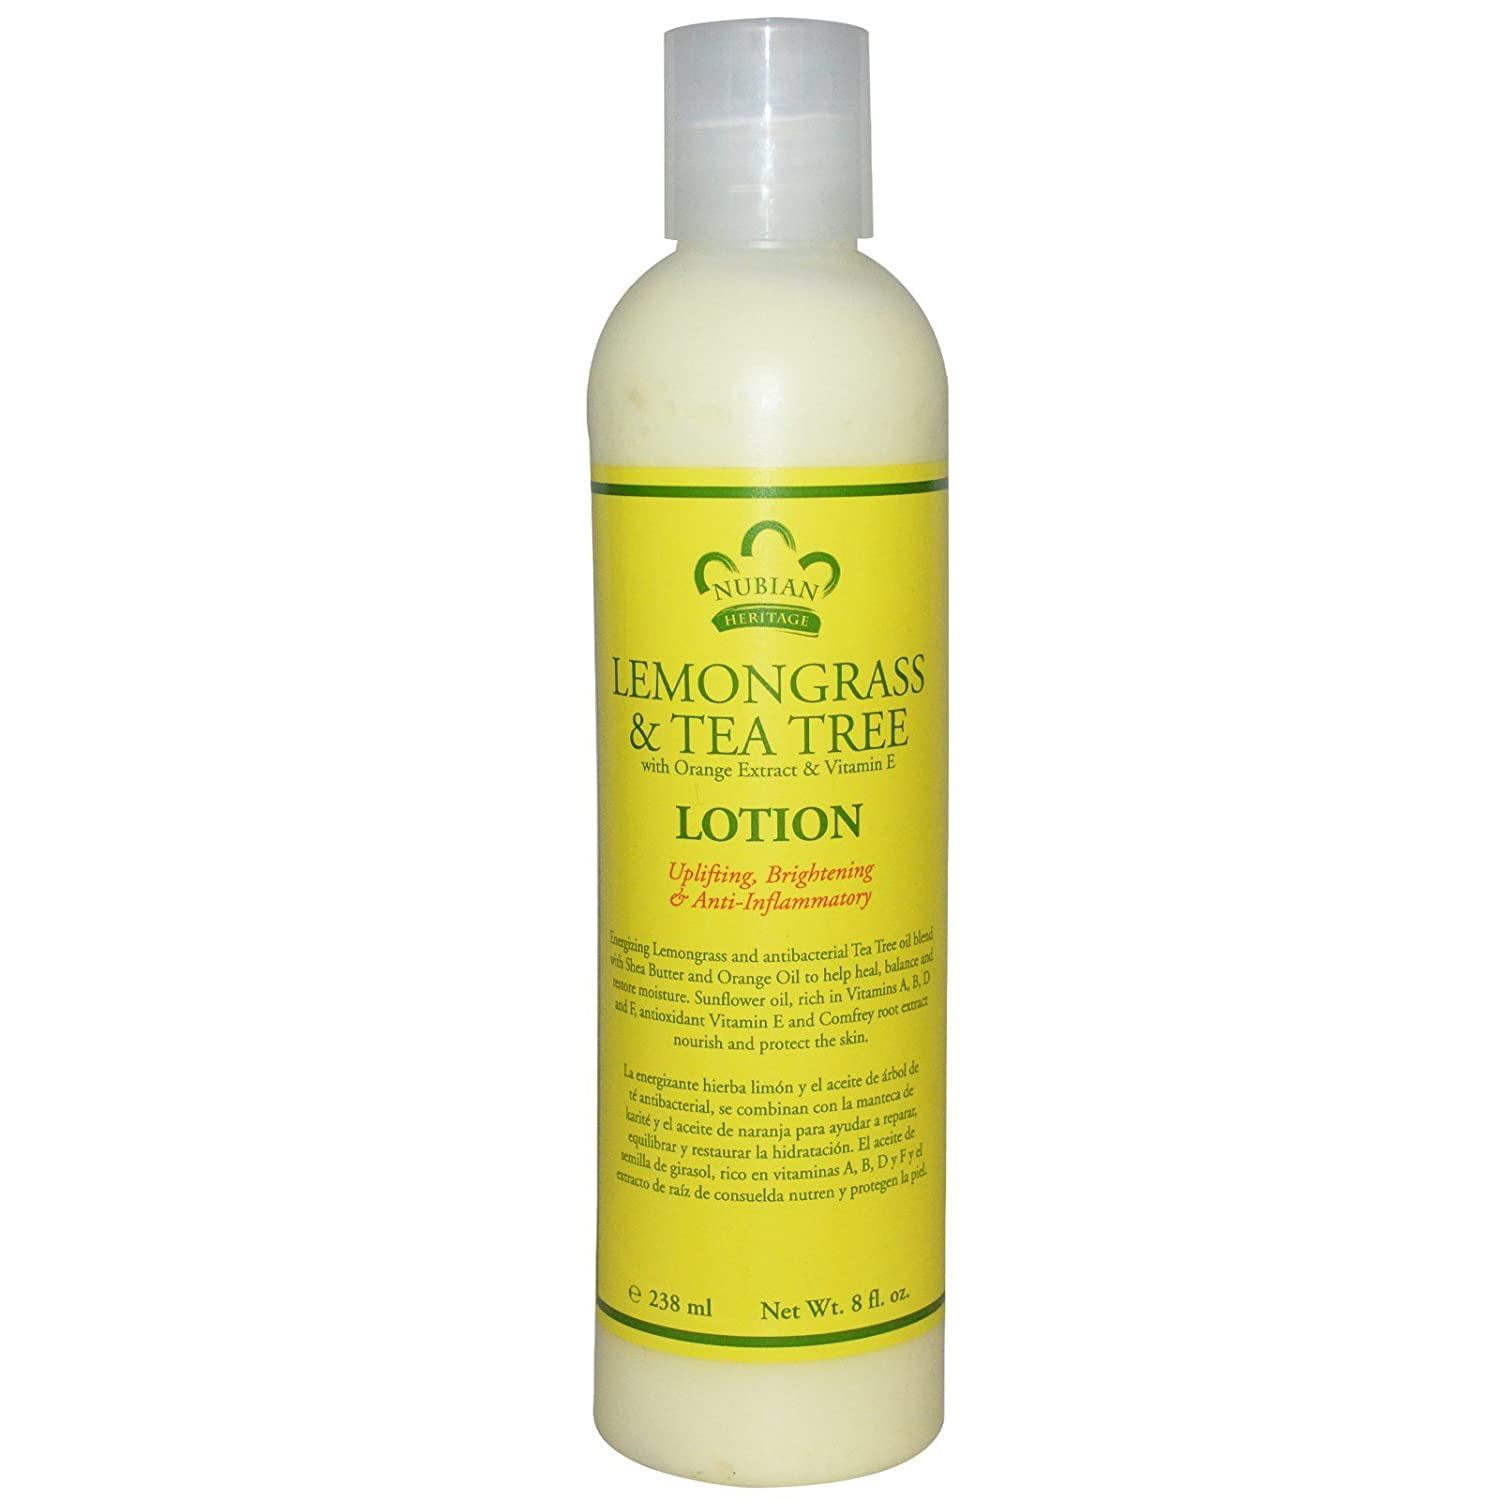 Amazon.com: Nubian Heritage Lemongrass & Tea Tree Body Lotion and Shea Butter Bundle, 13 oz and 4 oz: Beauty